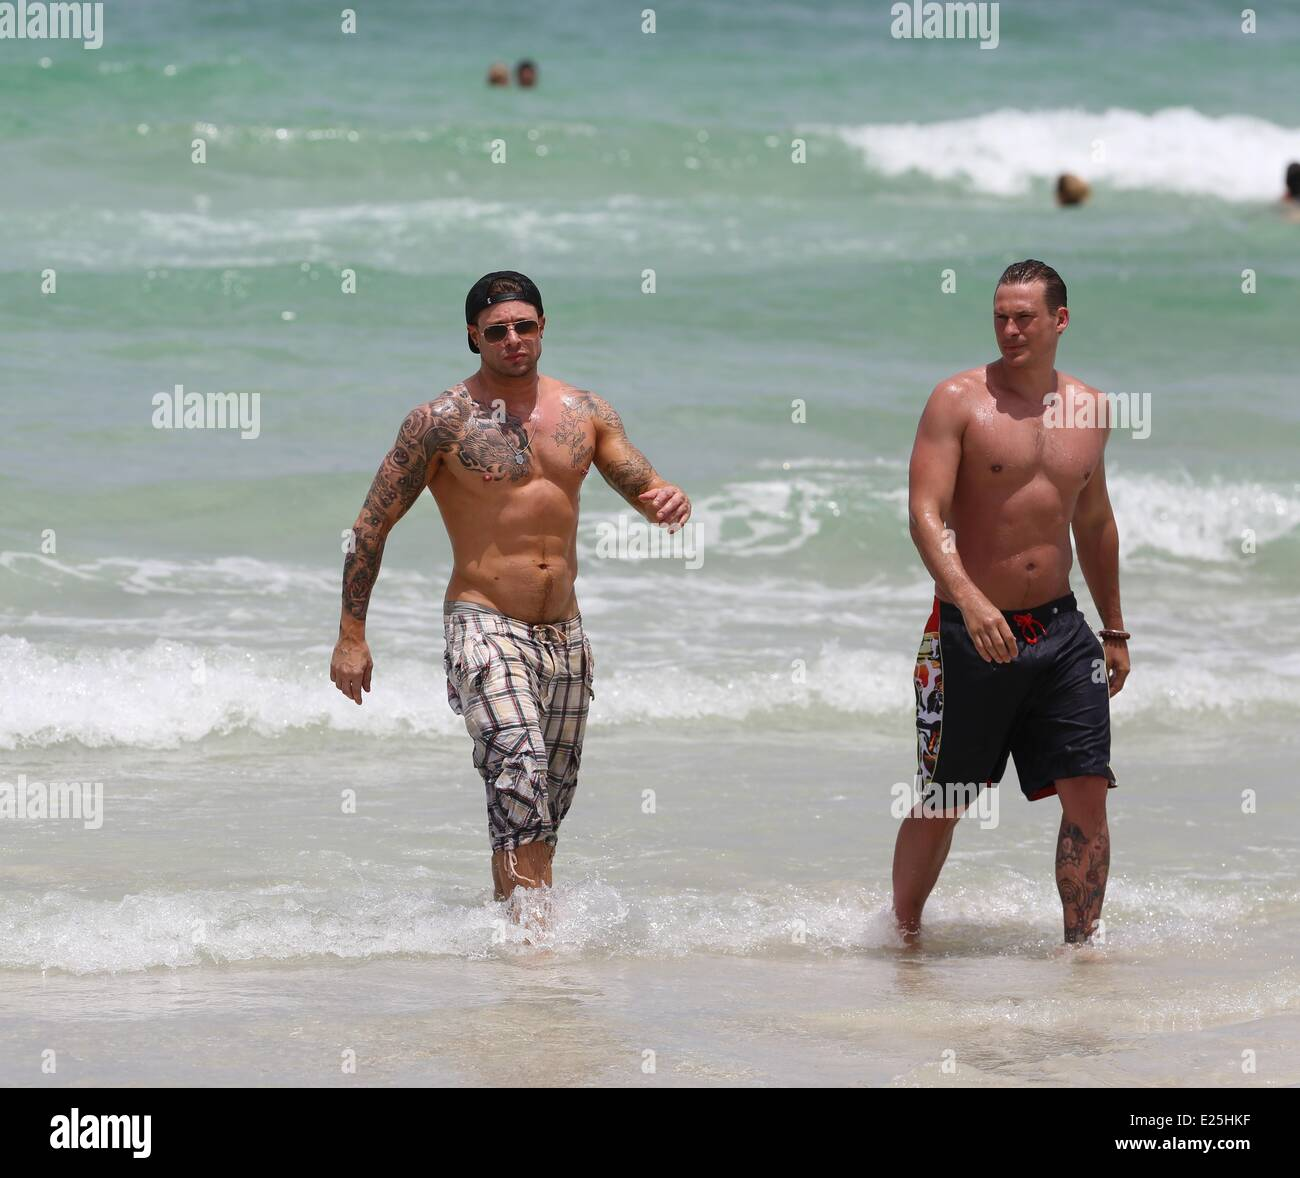 Duncan james and lee ryan from blue on holiday at nikki beach resort on miami beach featuring lee ryanduncan james where miami florida united states